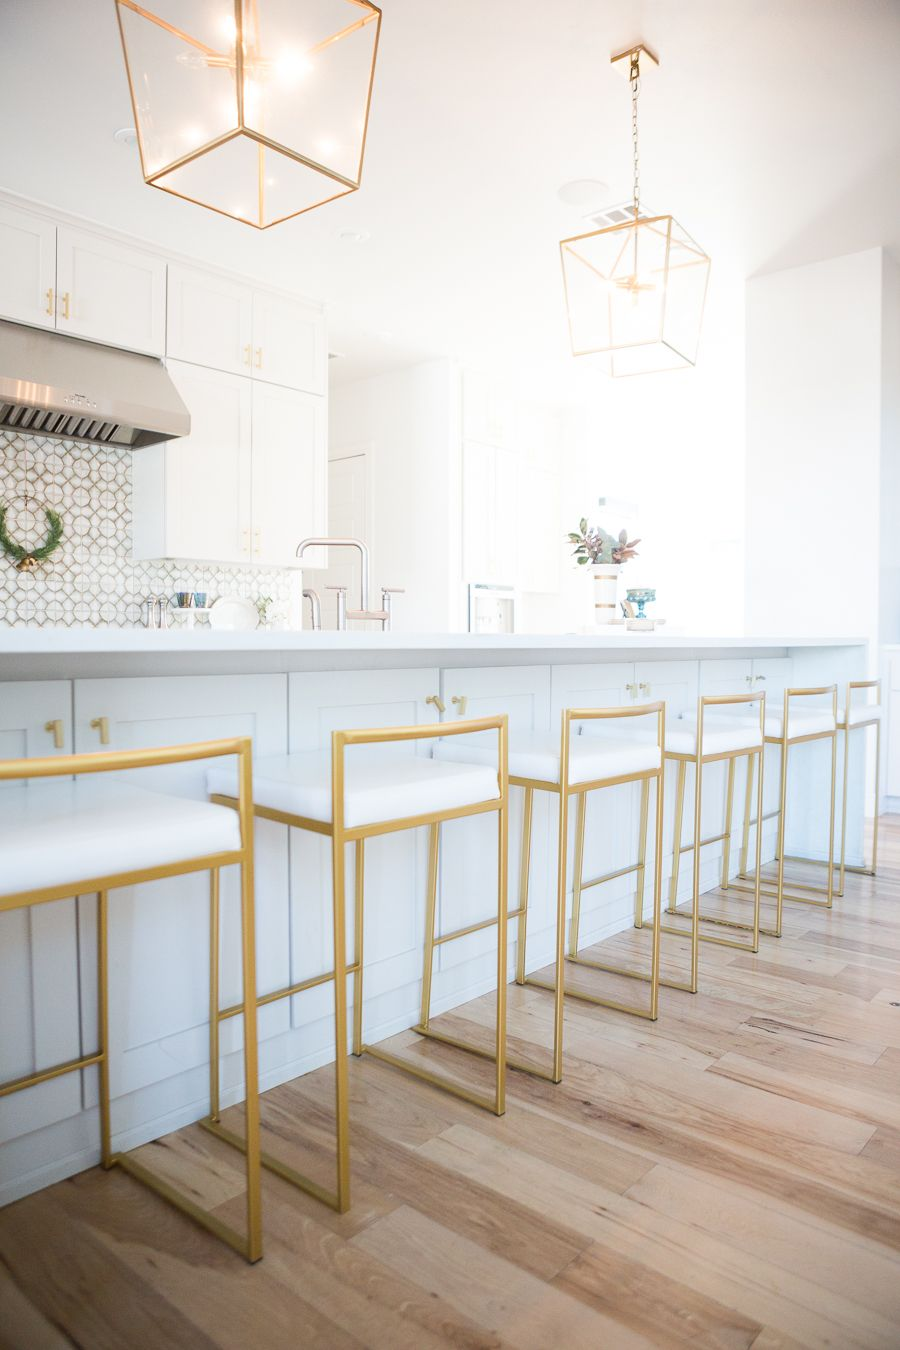 10 Affordable Gold Bar Stools For Home Design Cc And Mike Lifestyle And Design Blog Modern Kitchen Design Gold Bar Stools Kitchen Bar Stools